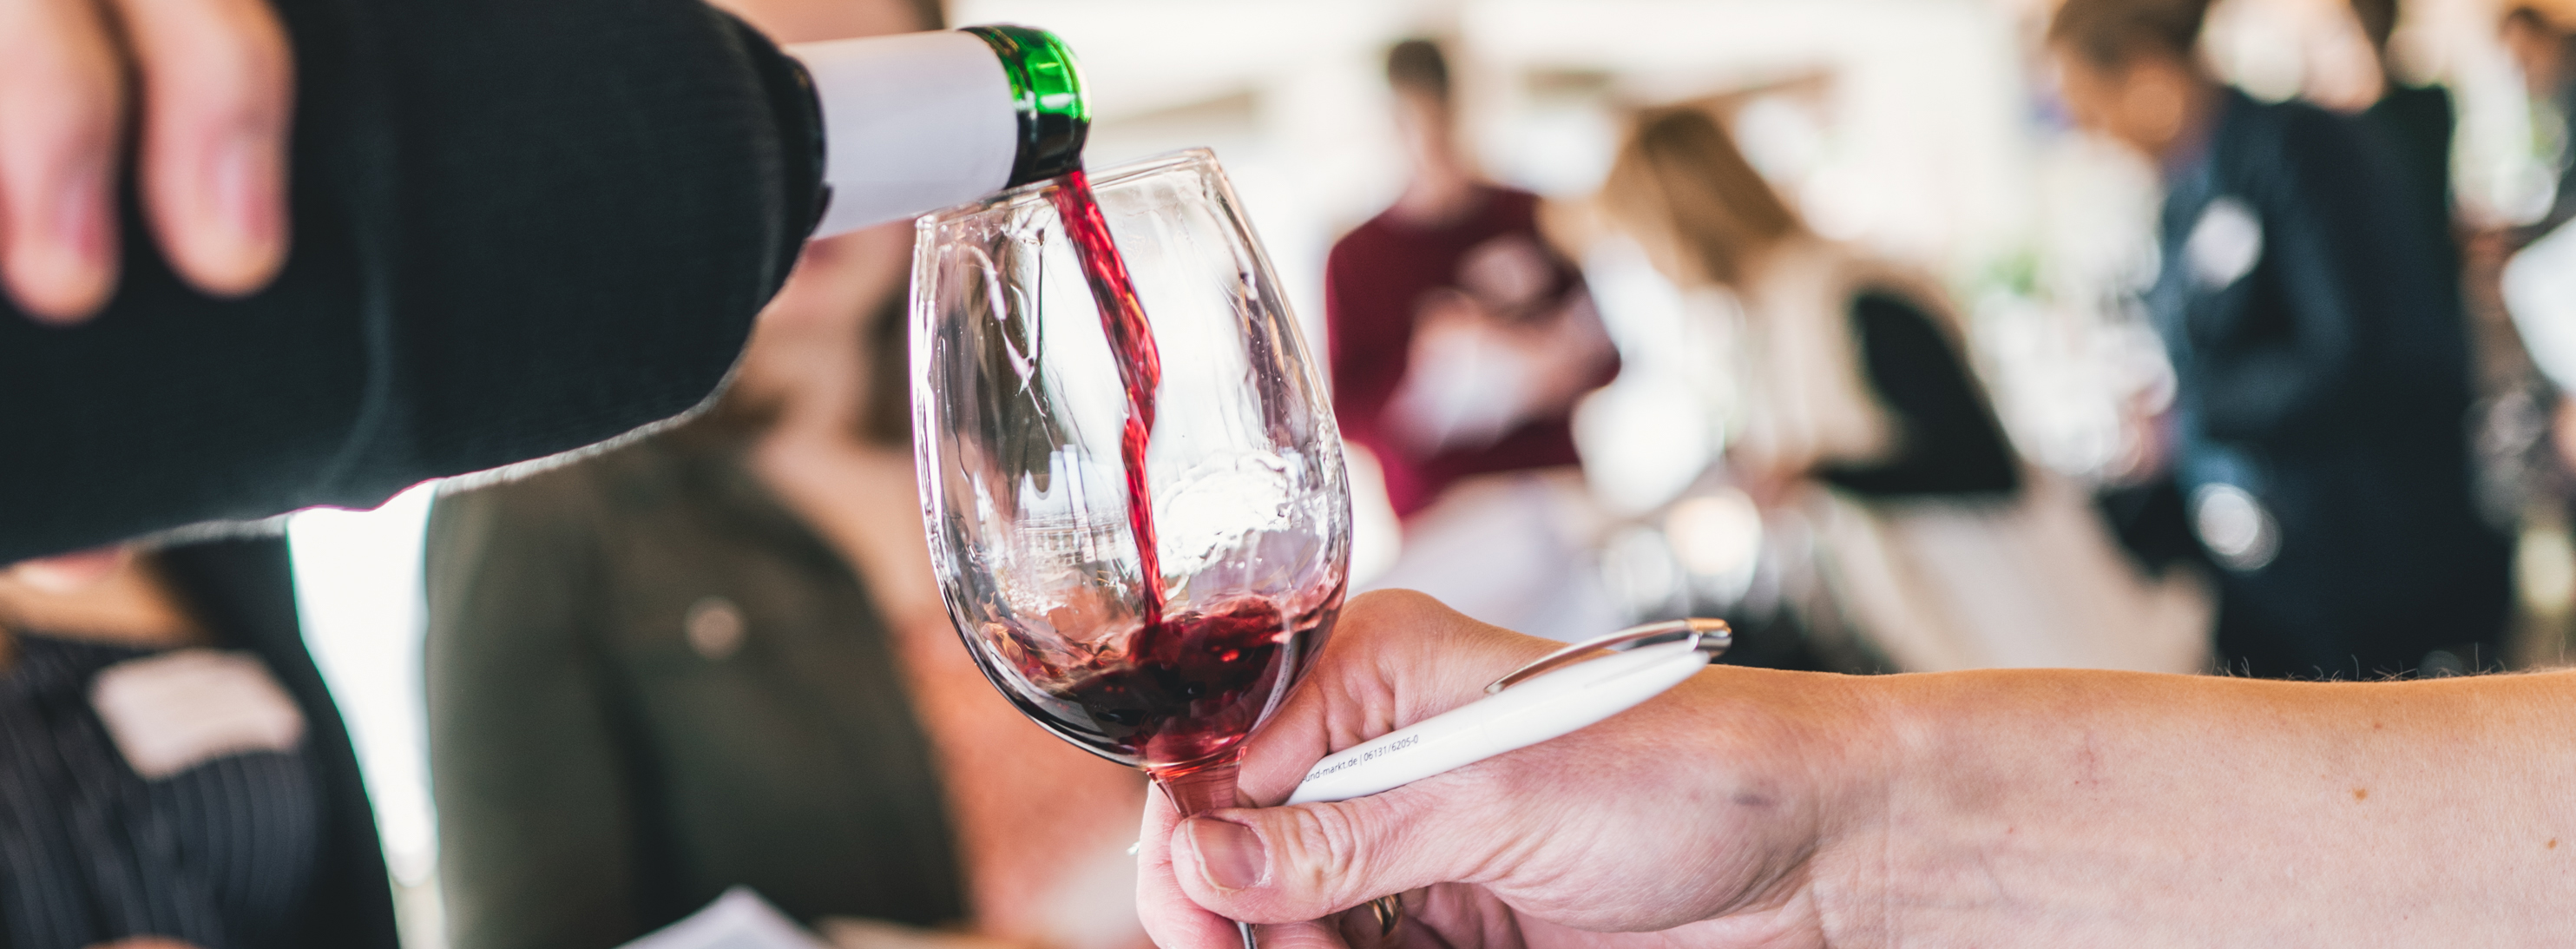 The Hot 50 Bordeaux 2020 selection is here